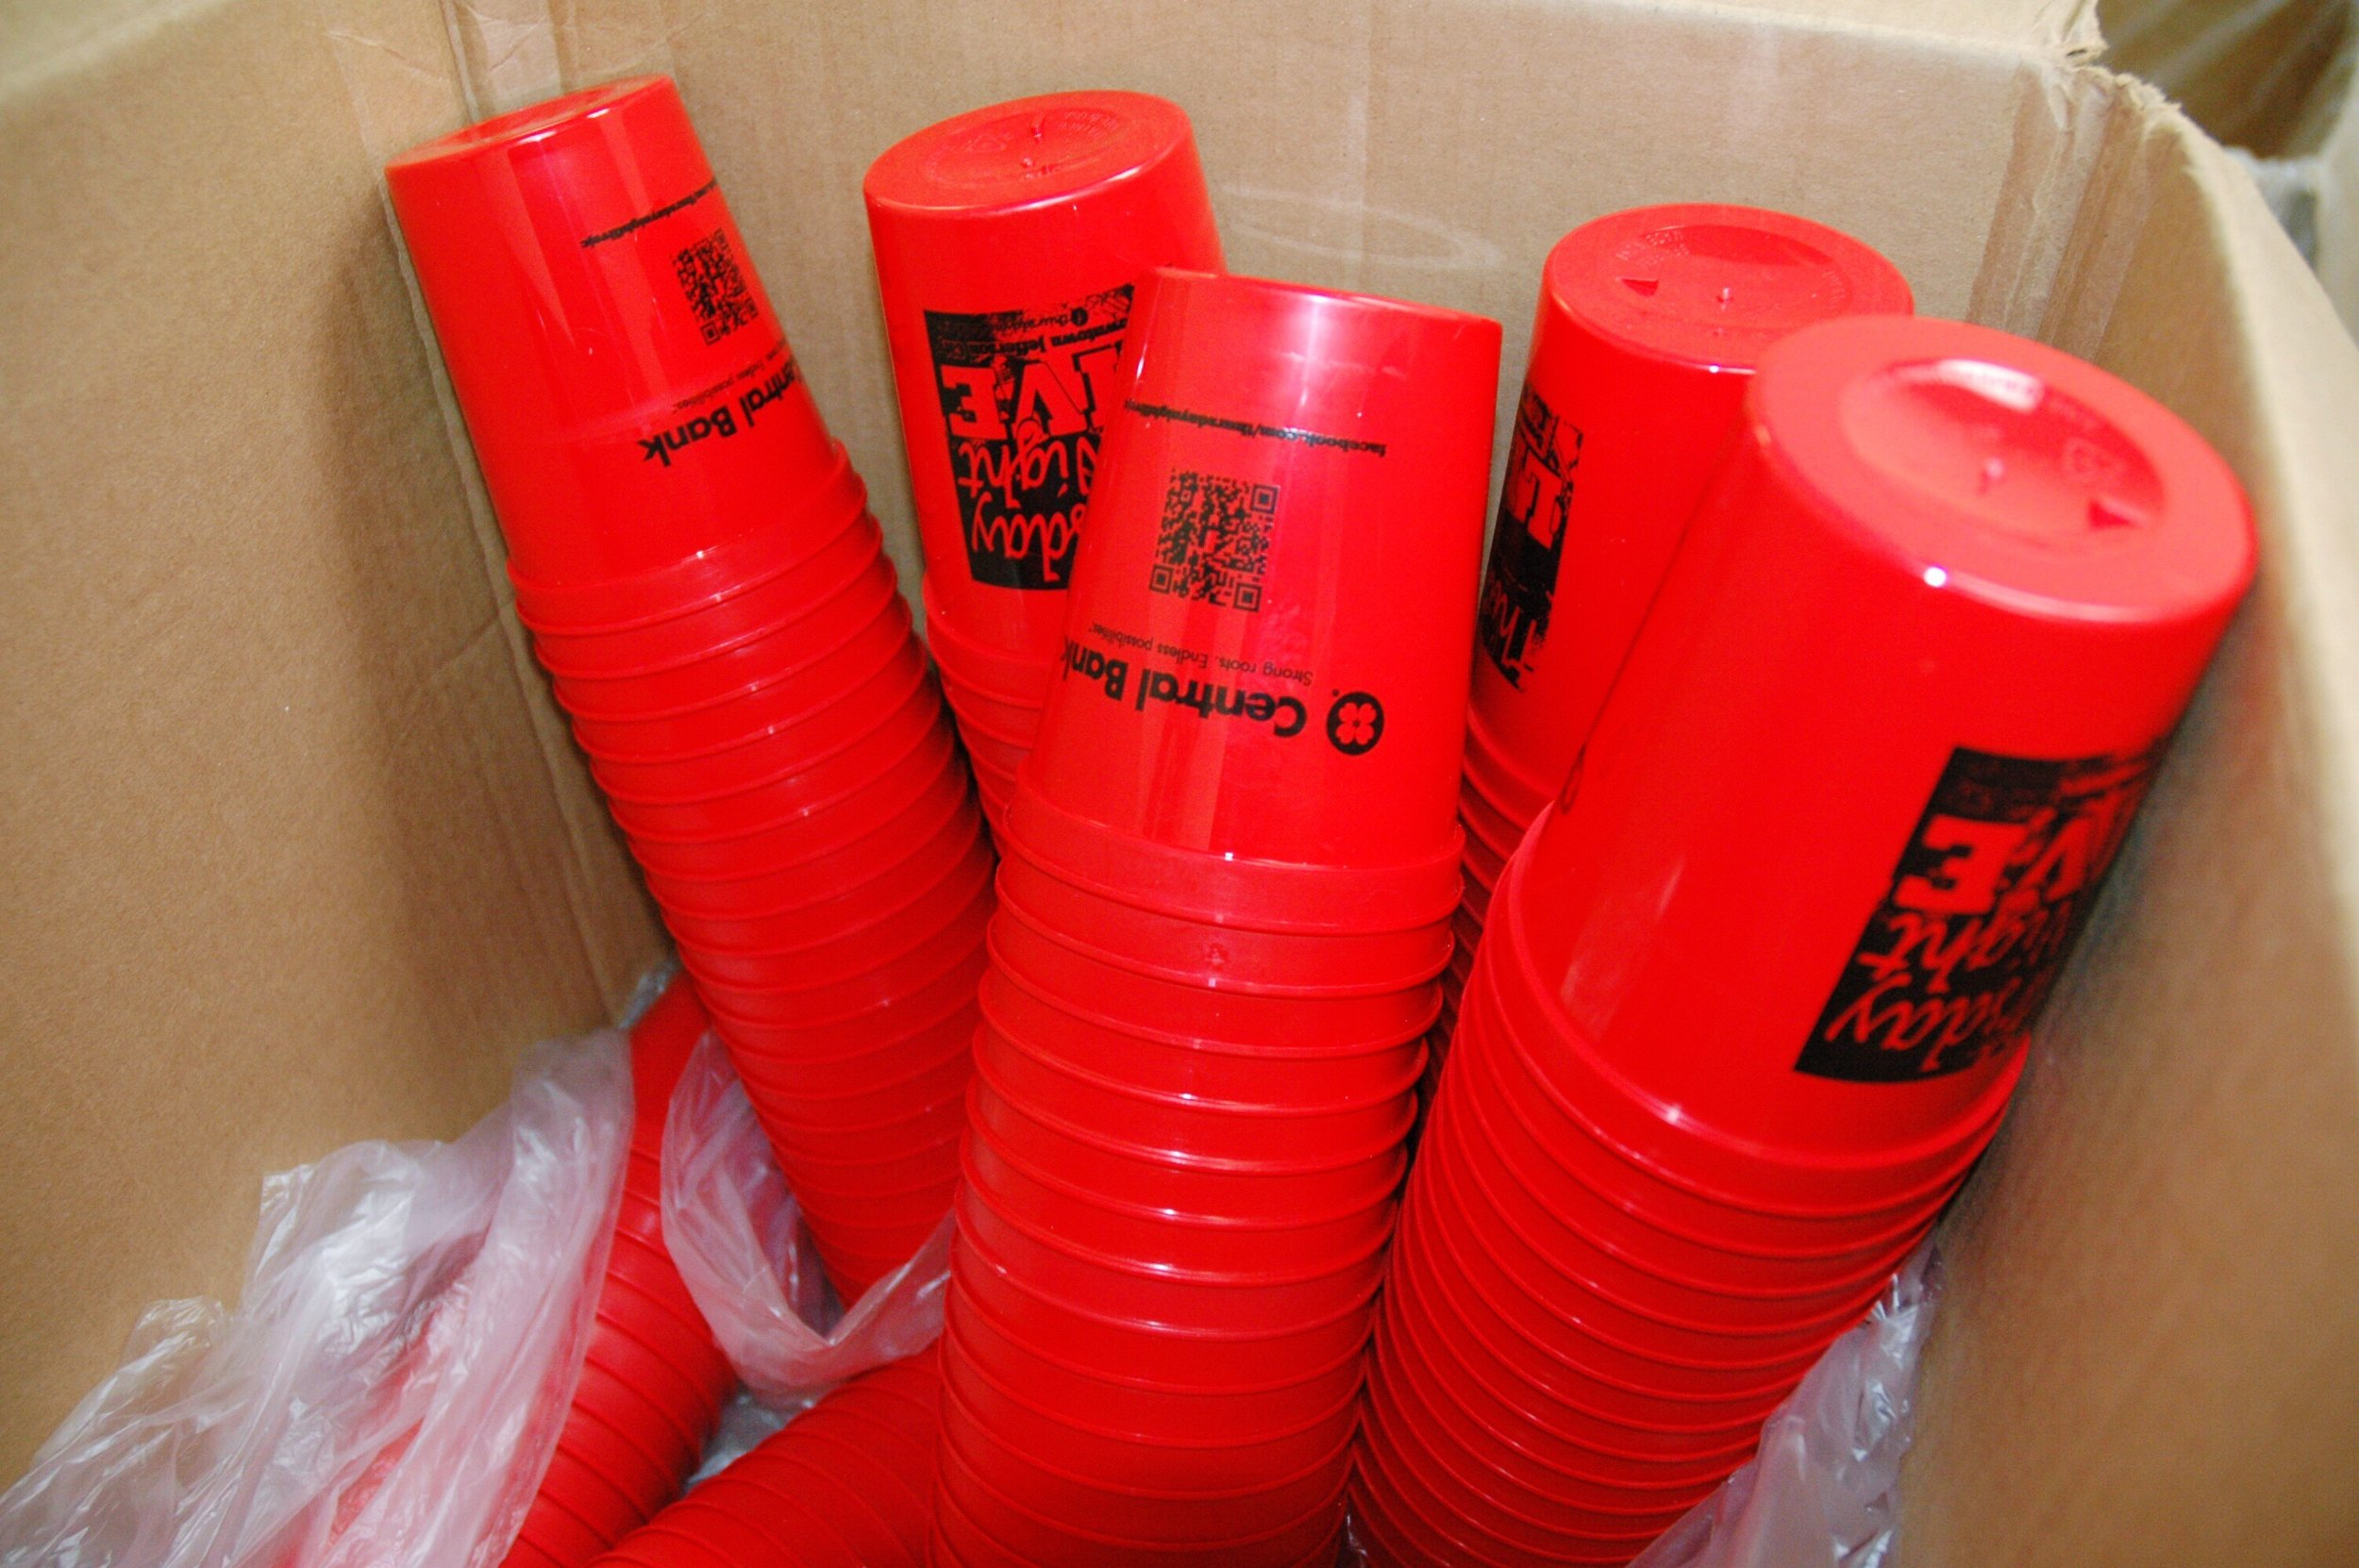 thursday-night-live-jefferson-city-mo-downtown-jeff-city-blog-red-cups